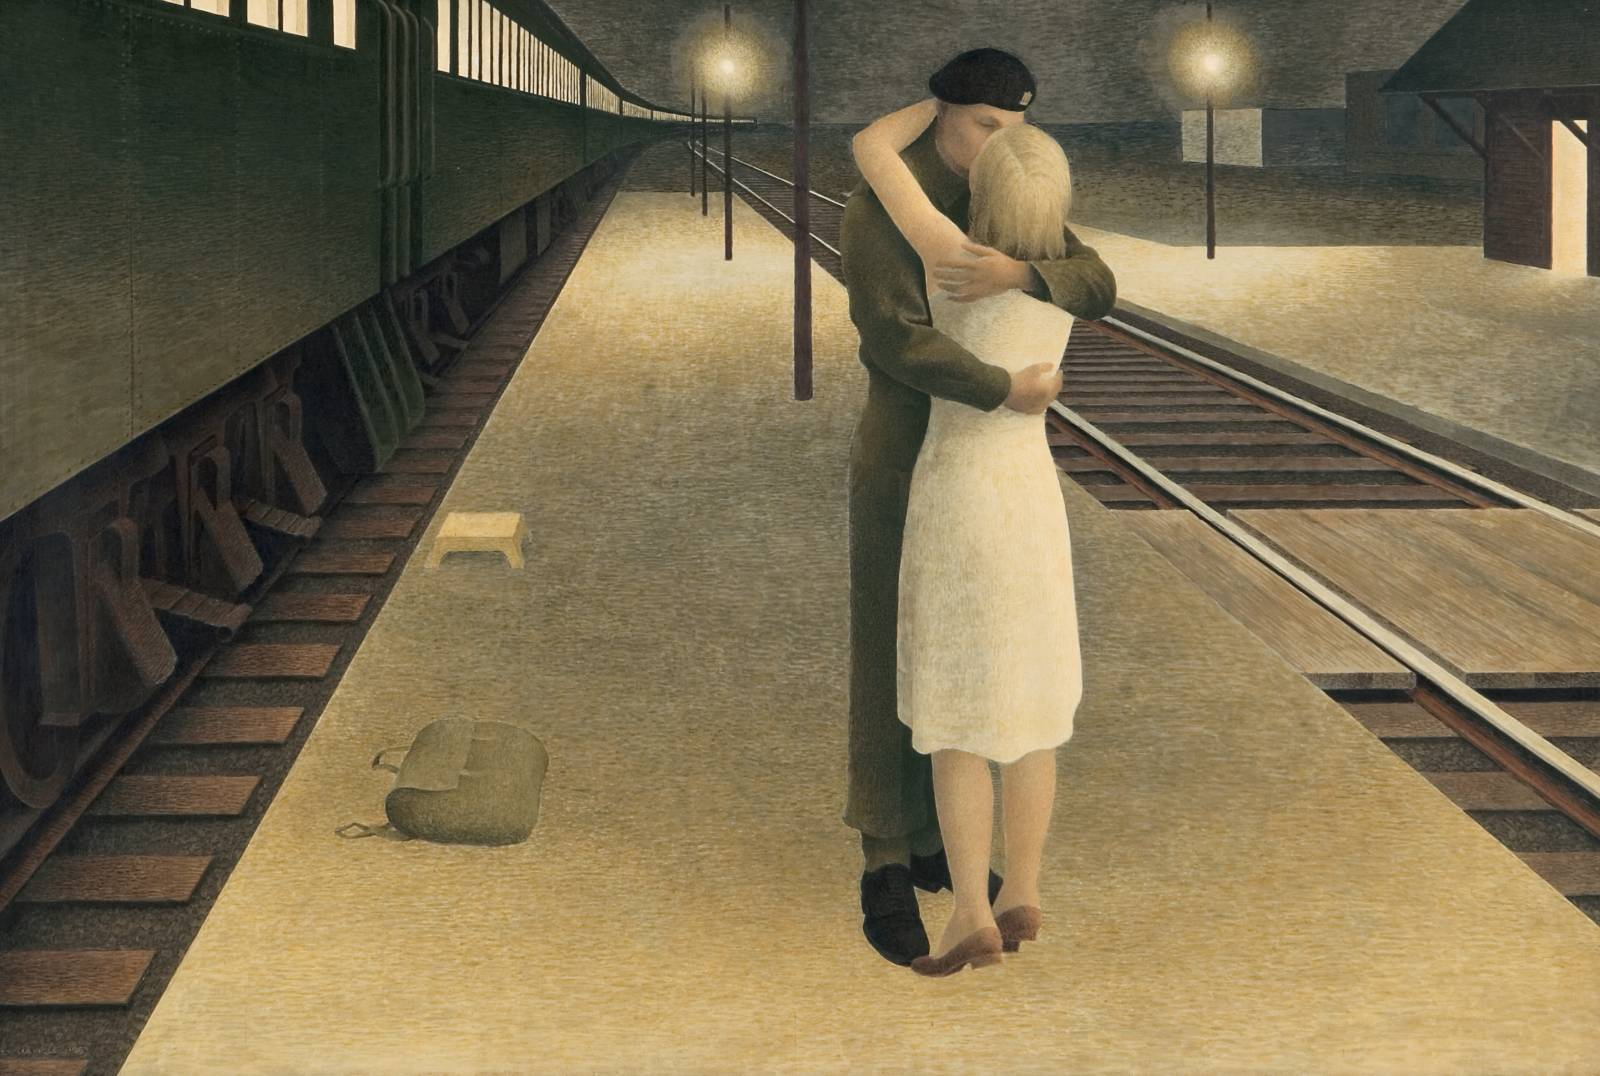 Alex Colville (Canadian; Realism, Magic Realism; 1920 - 2013): Soldier and Girl at Station, 1953. Glazed tempera on hardboard, 40.6 x 60.9 cm. The Thomson Collection, Art Gallery of Ontario, Toronto, Ontario, Canada. © This artwork may be protected by copyright. It is posted on the site in accordance with fair use principles.